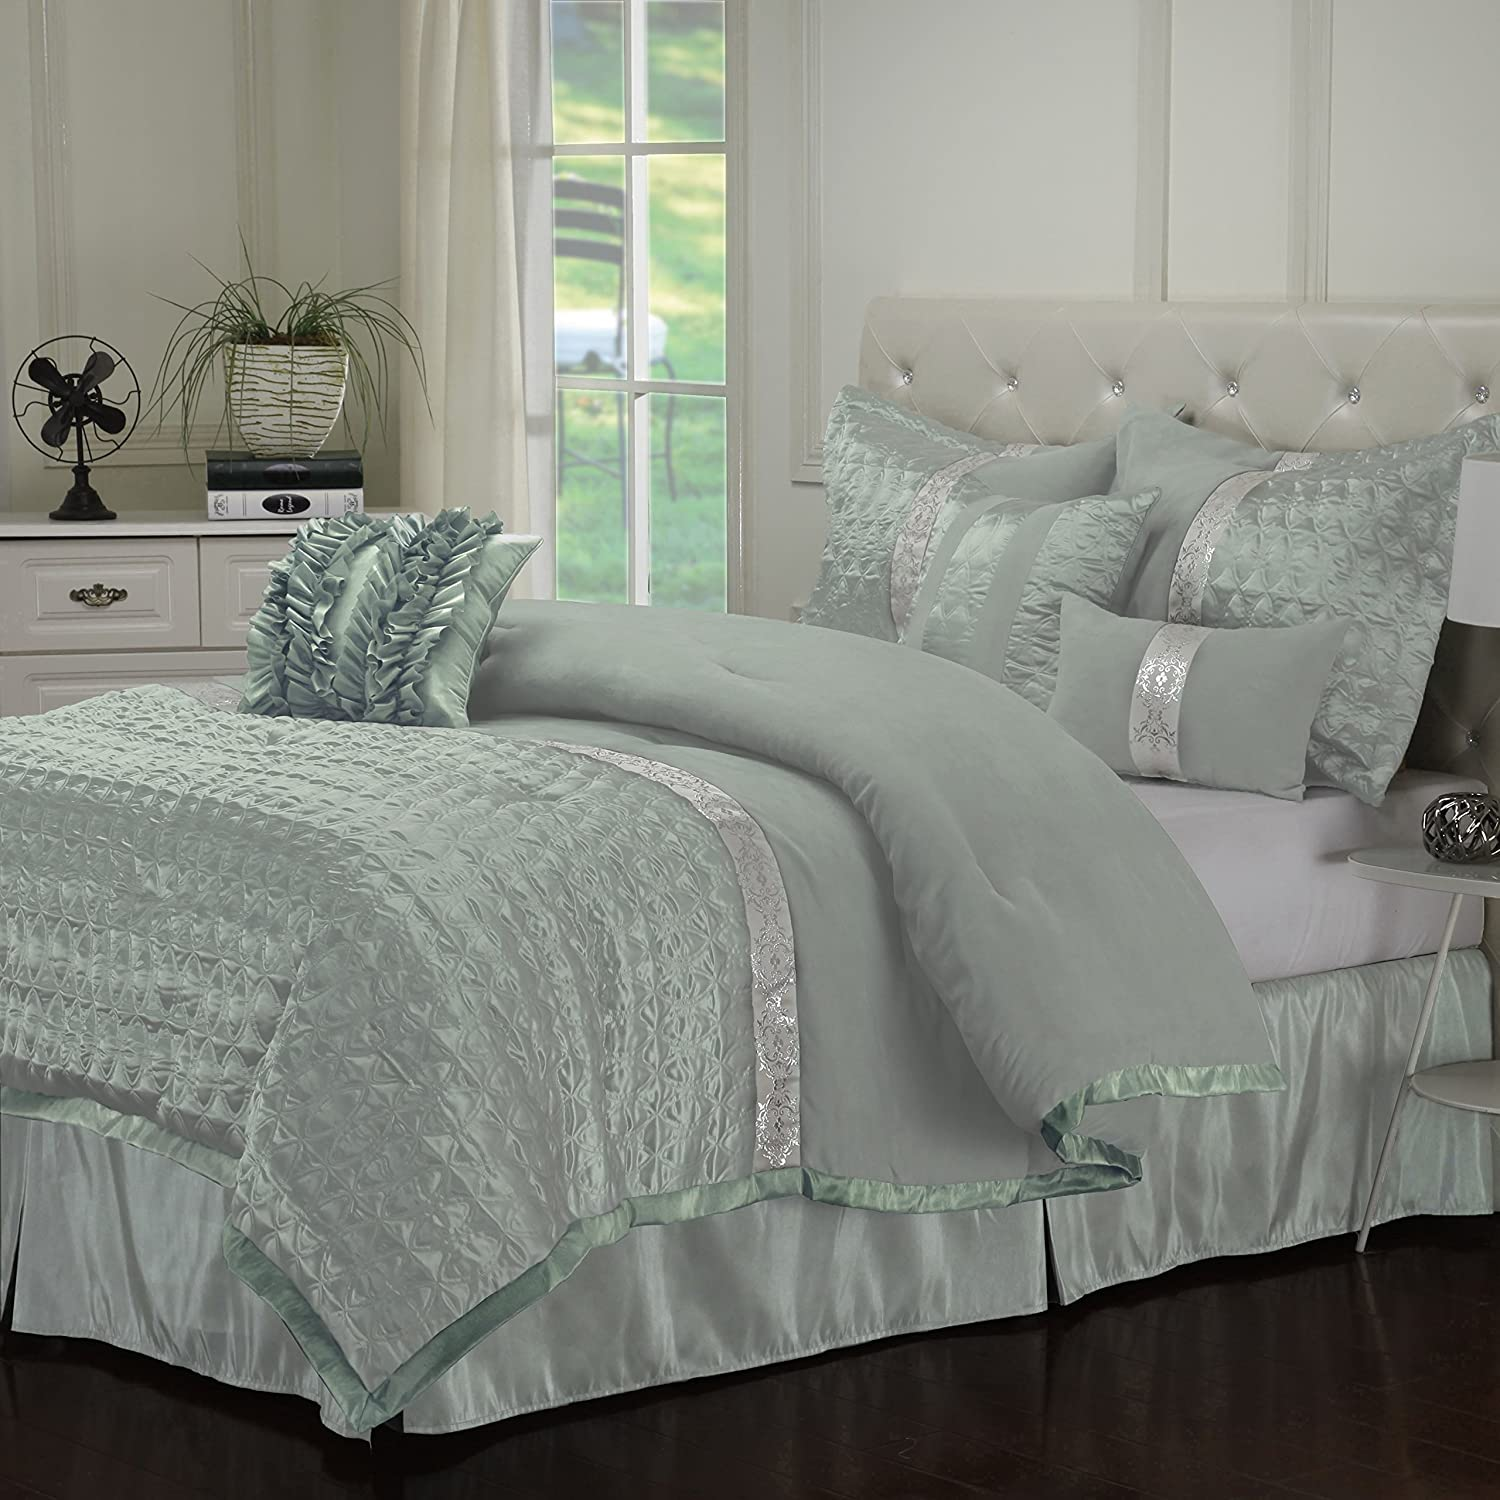 Dannica 7 Piece Silver Amp Teal Ruffled Comforter Bedding